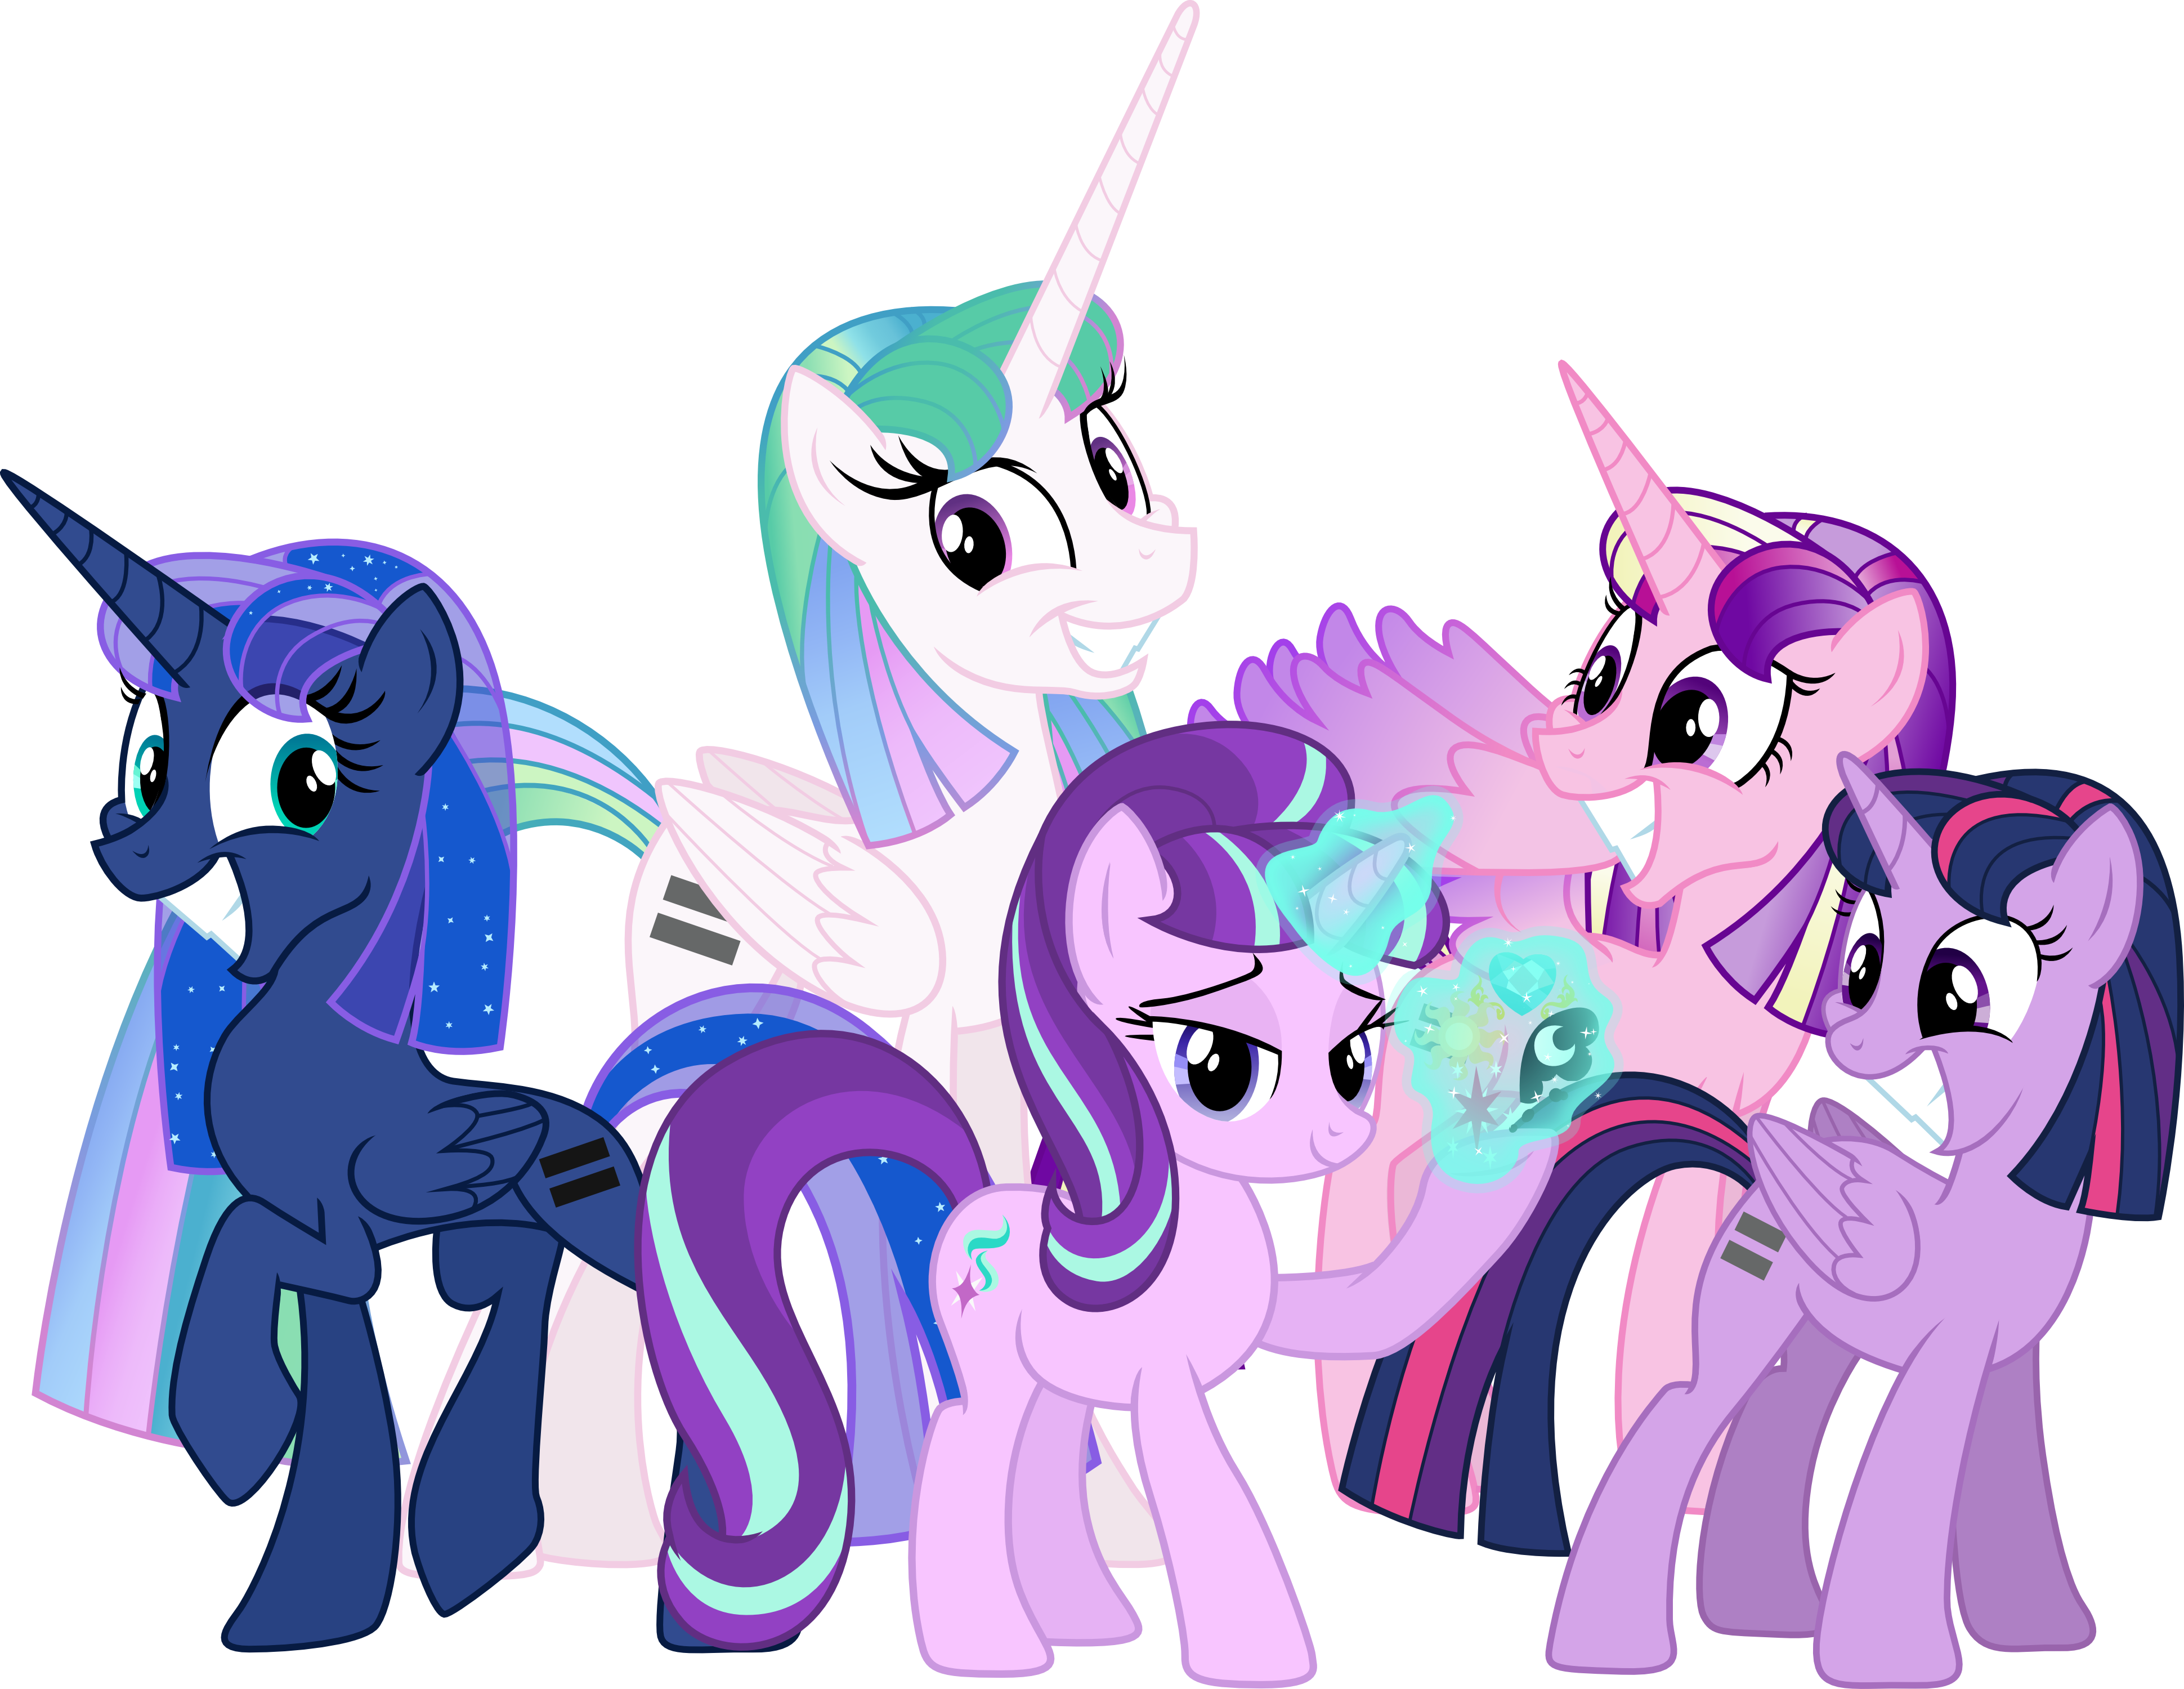 End cute equal cutie mark equalized equestria is doomed grin my